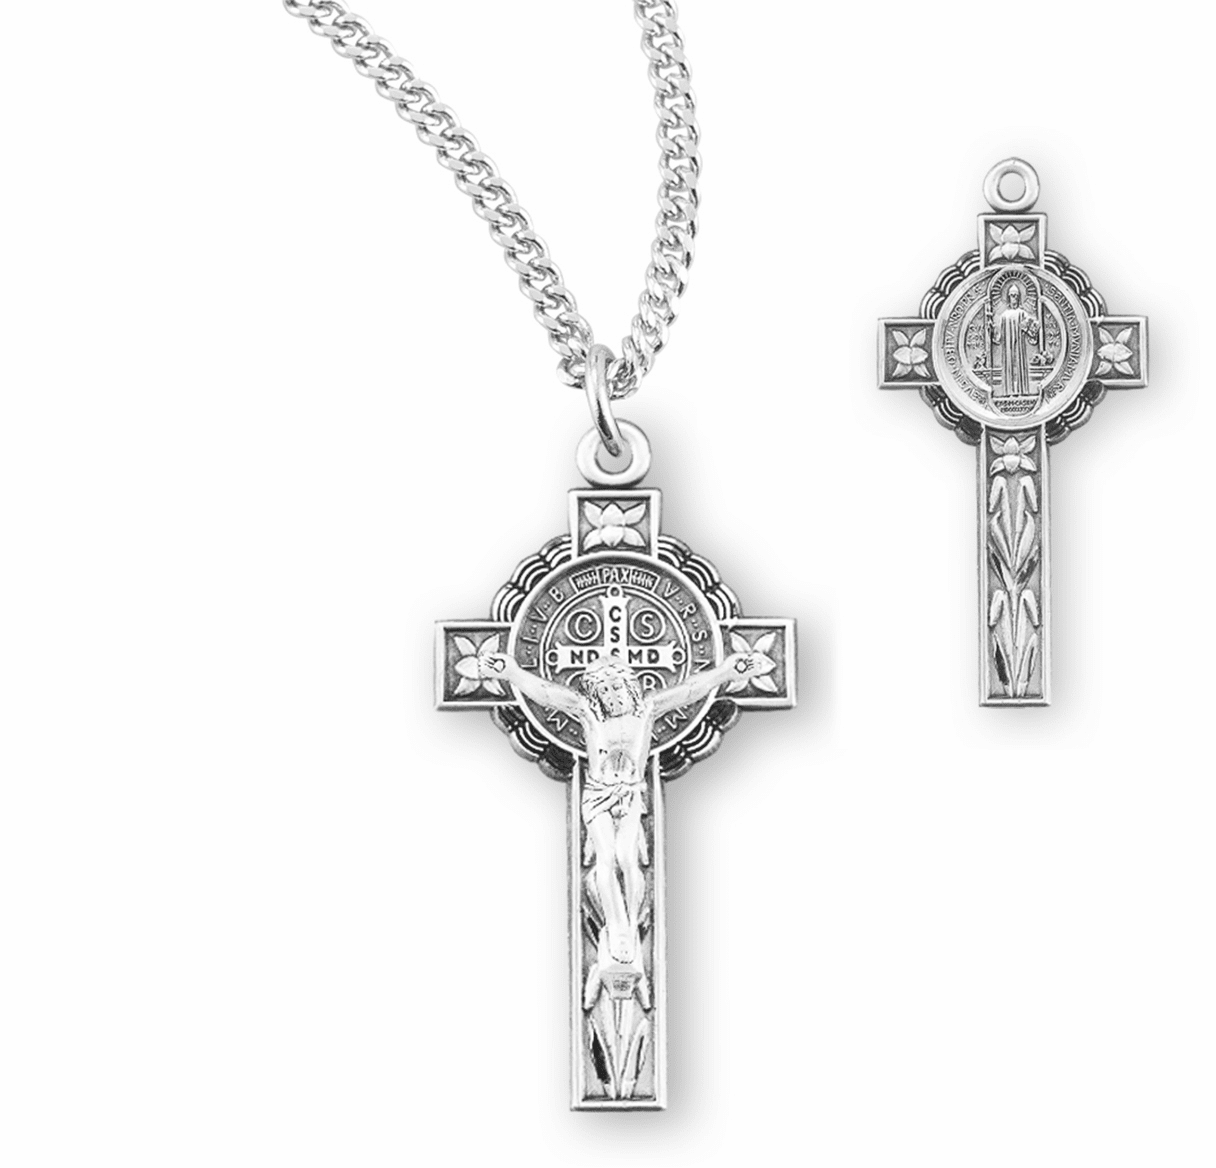 Ornate St Benedict Sterling Silver Crucifix Necklace by HMH Religious